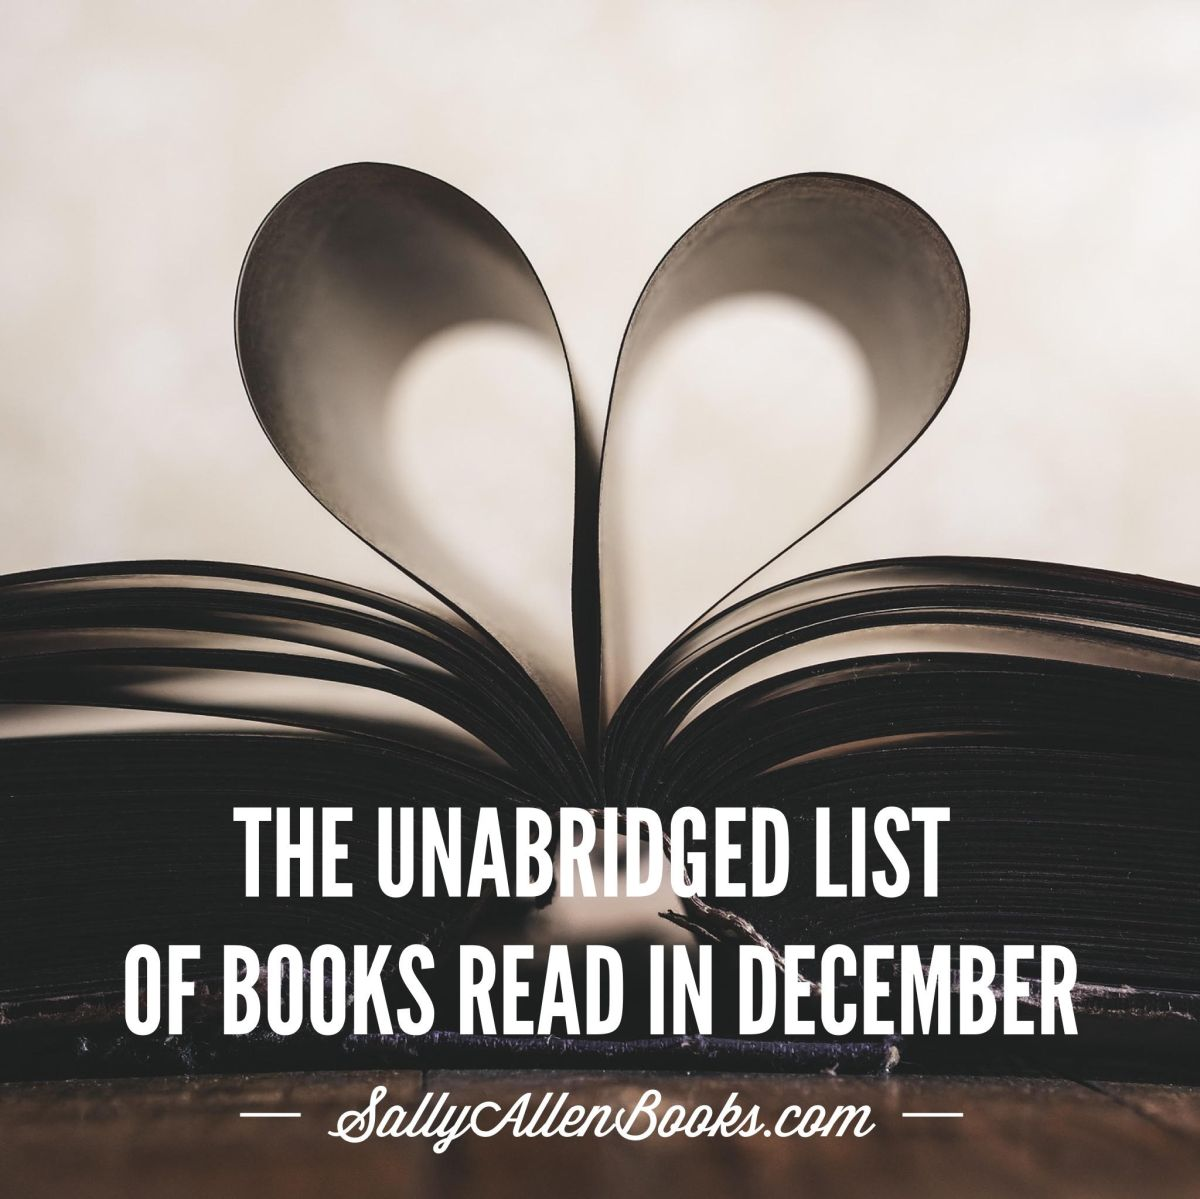 The unabridged list of books read in December